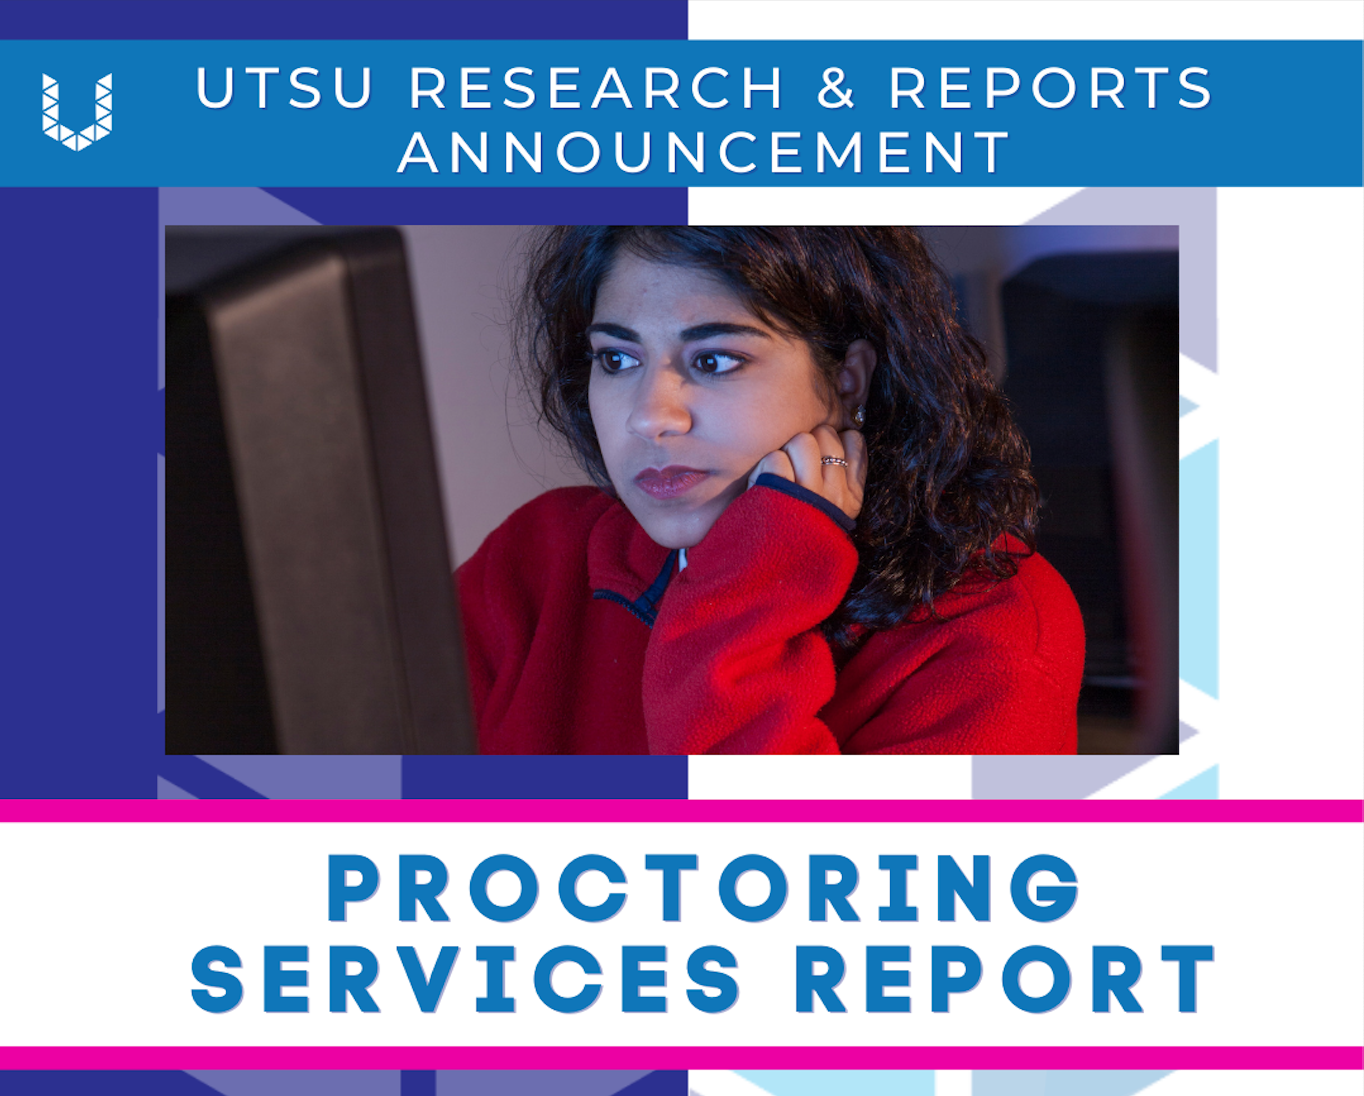 UTSU Research & Reports Announcment Procotoring Services Report with a picture of a young woman staring at a computer screen with a concerned face